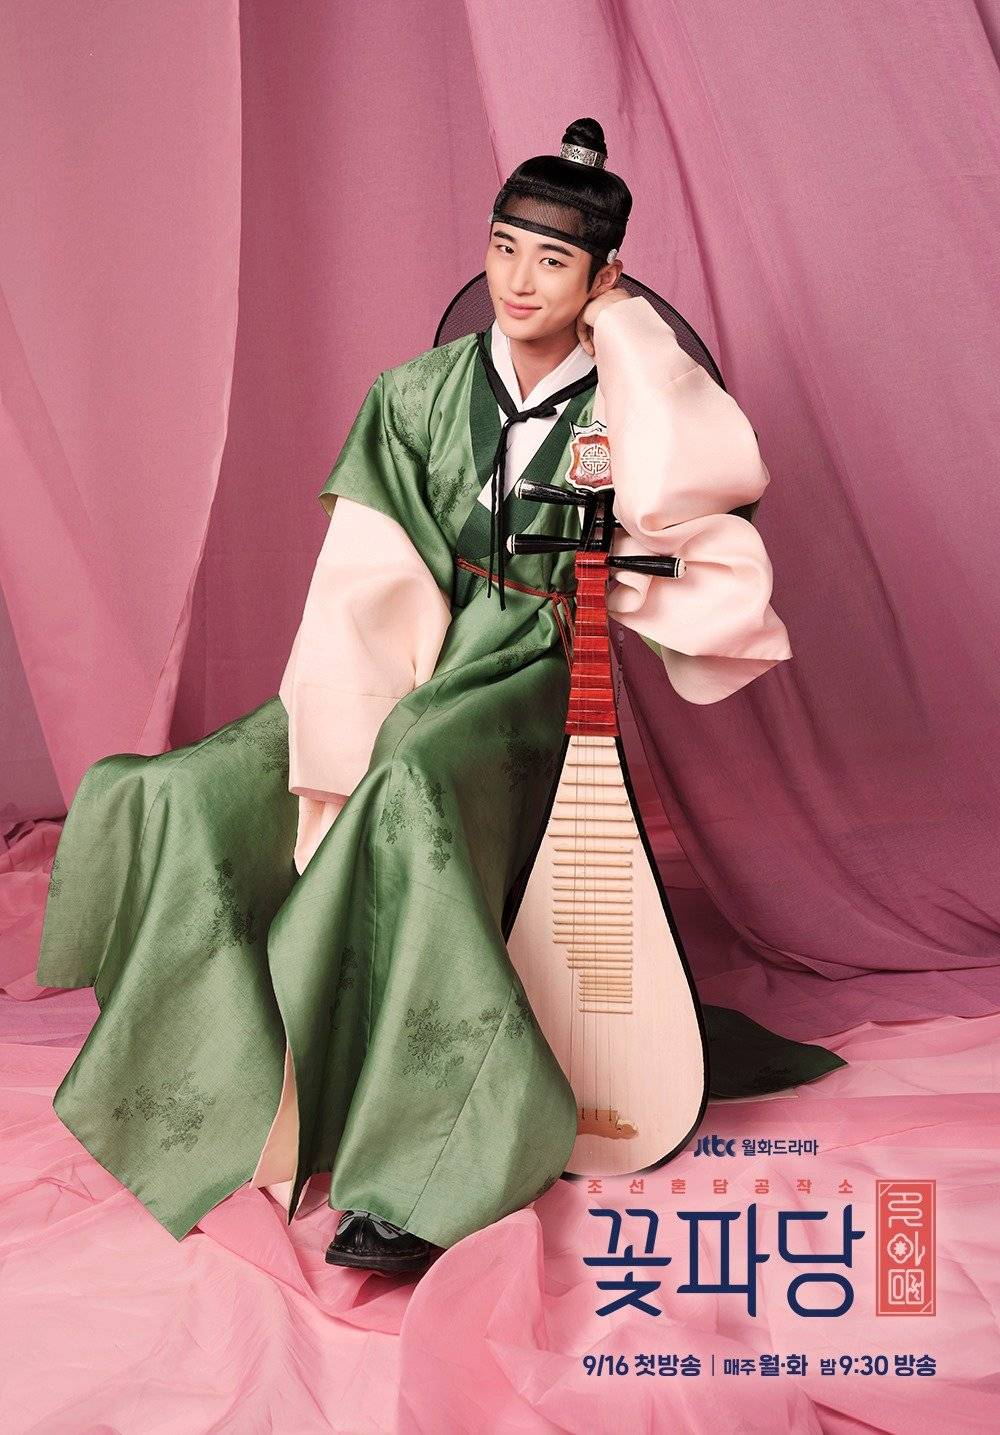 [K-Star]: The 3 actors are currently making us ecstatic with HanBok outfits